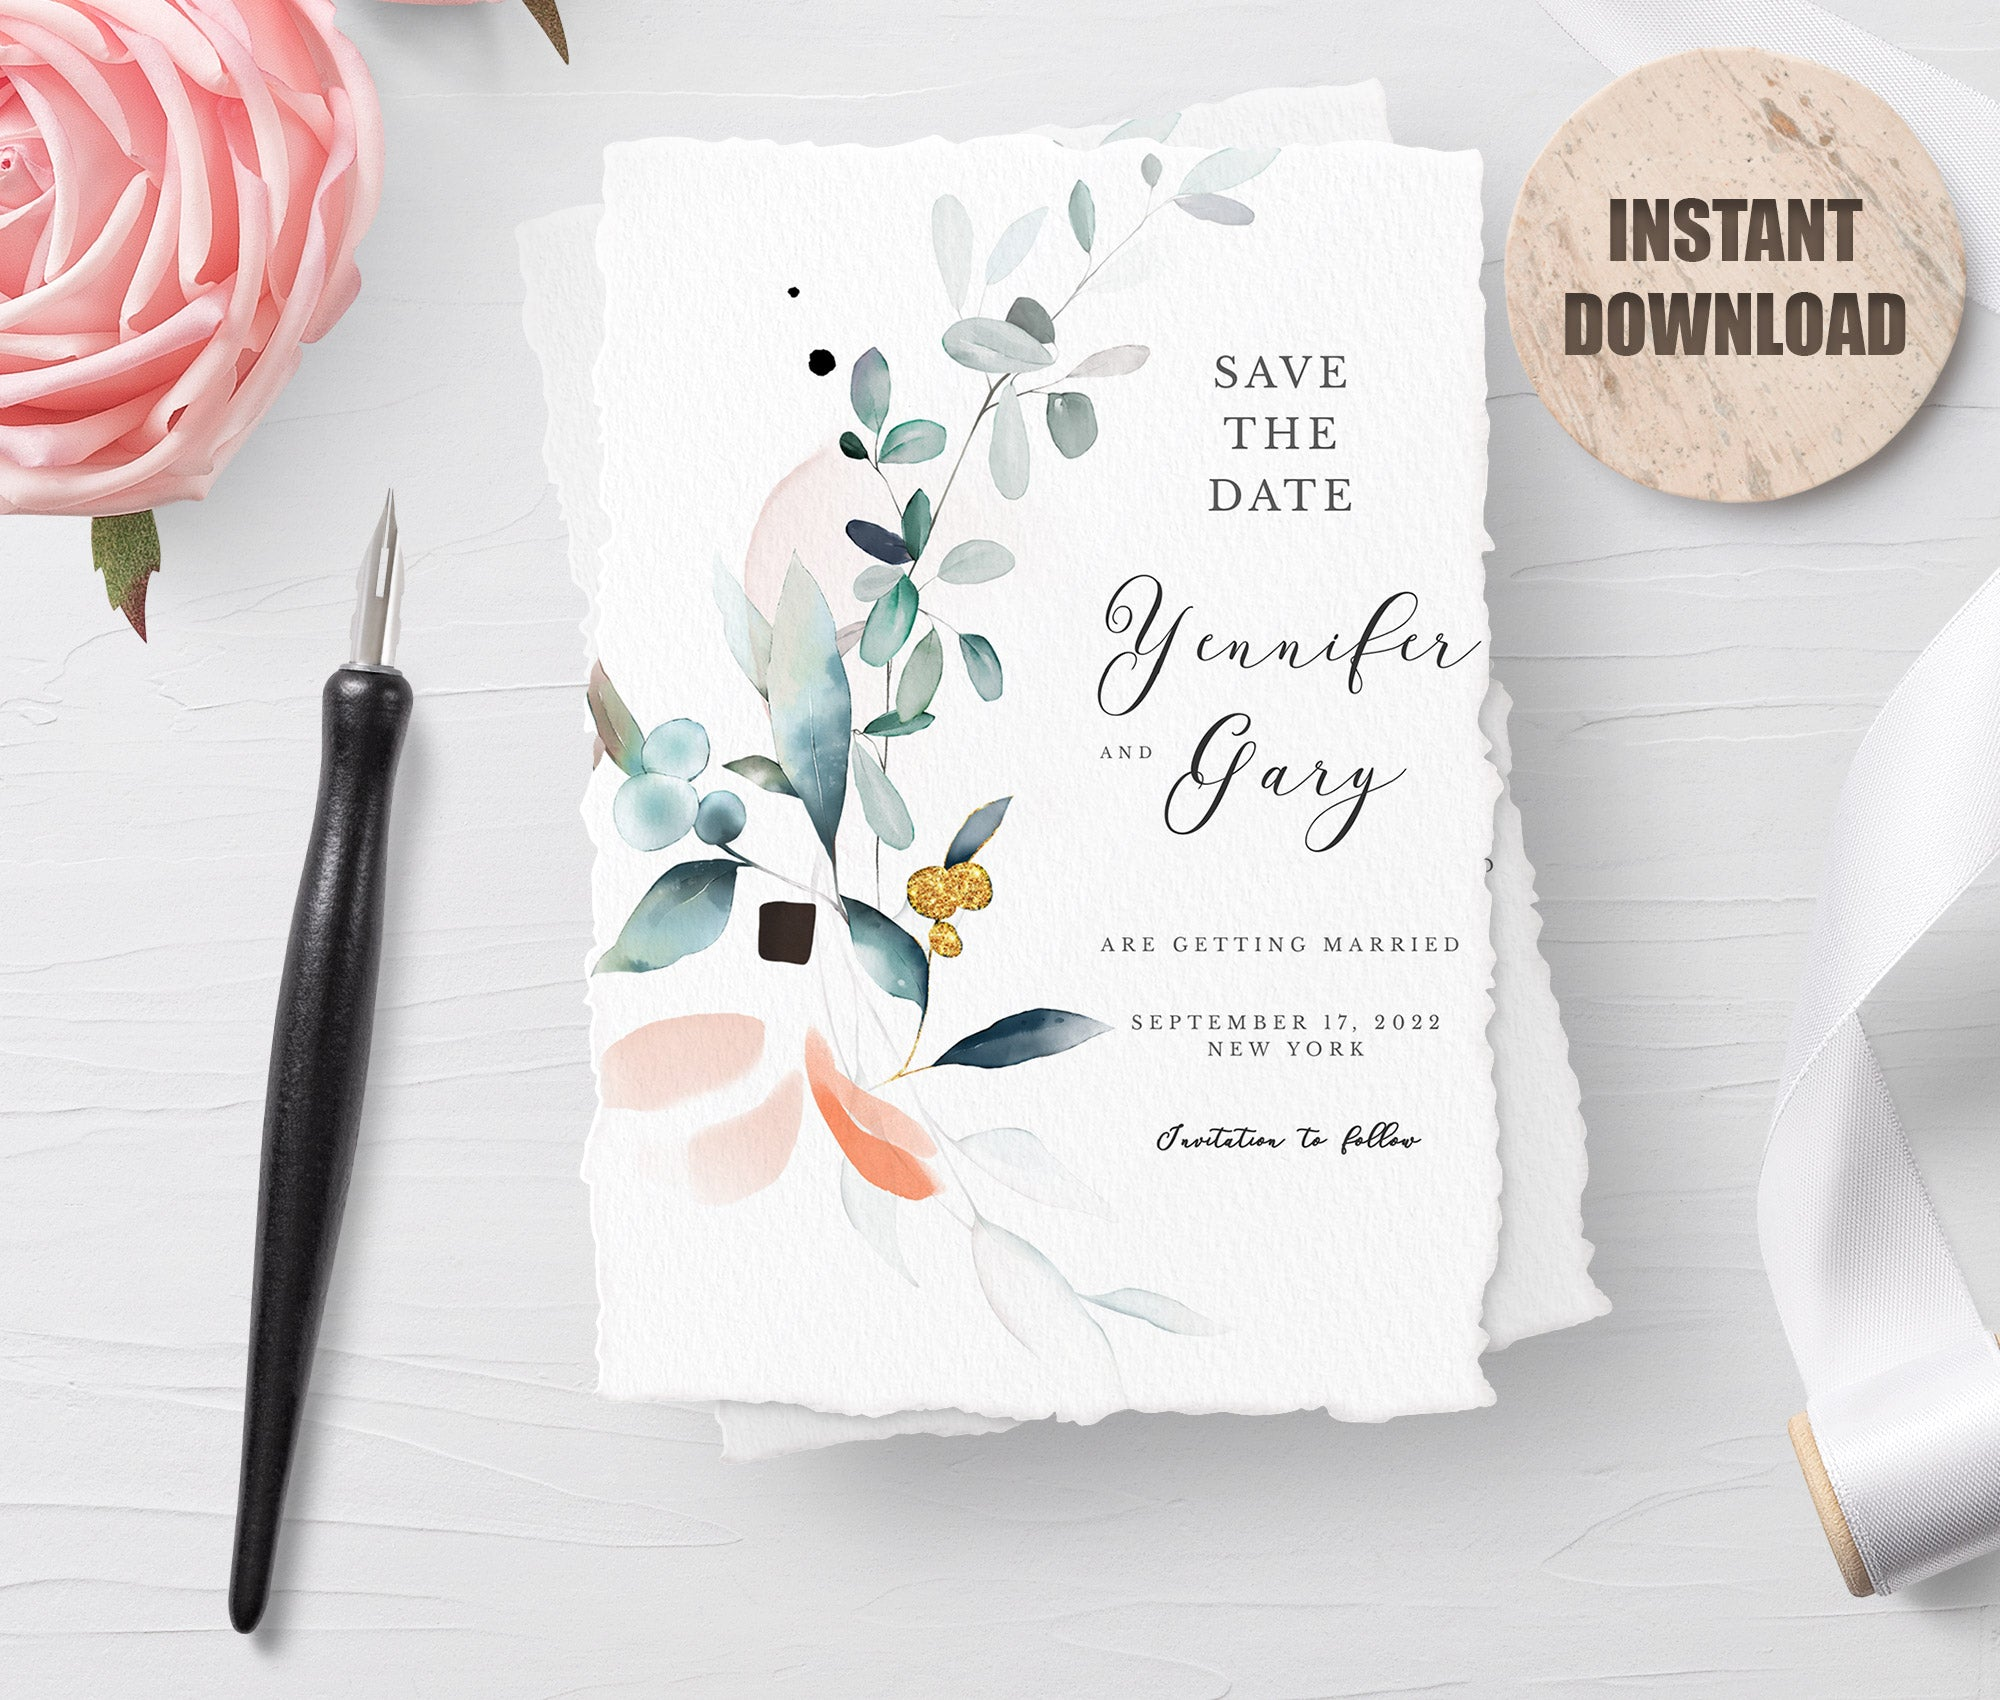 SPMR - Printable Save the Date Card set 5 - Greenlanderdesign